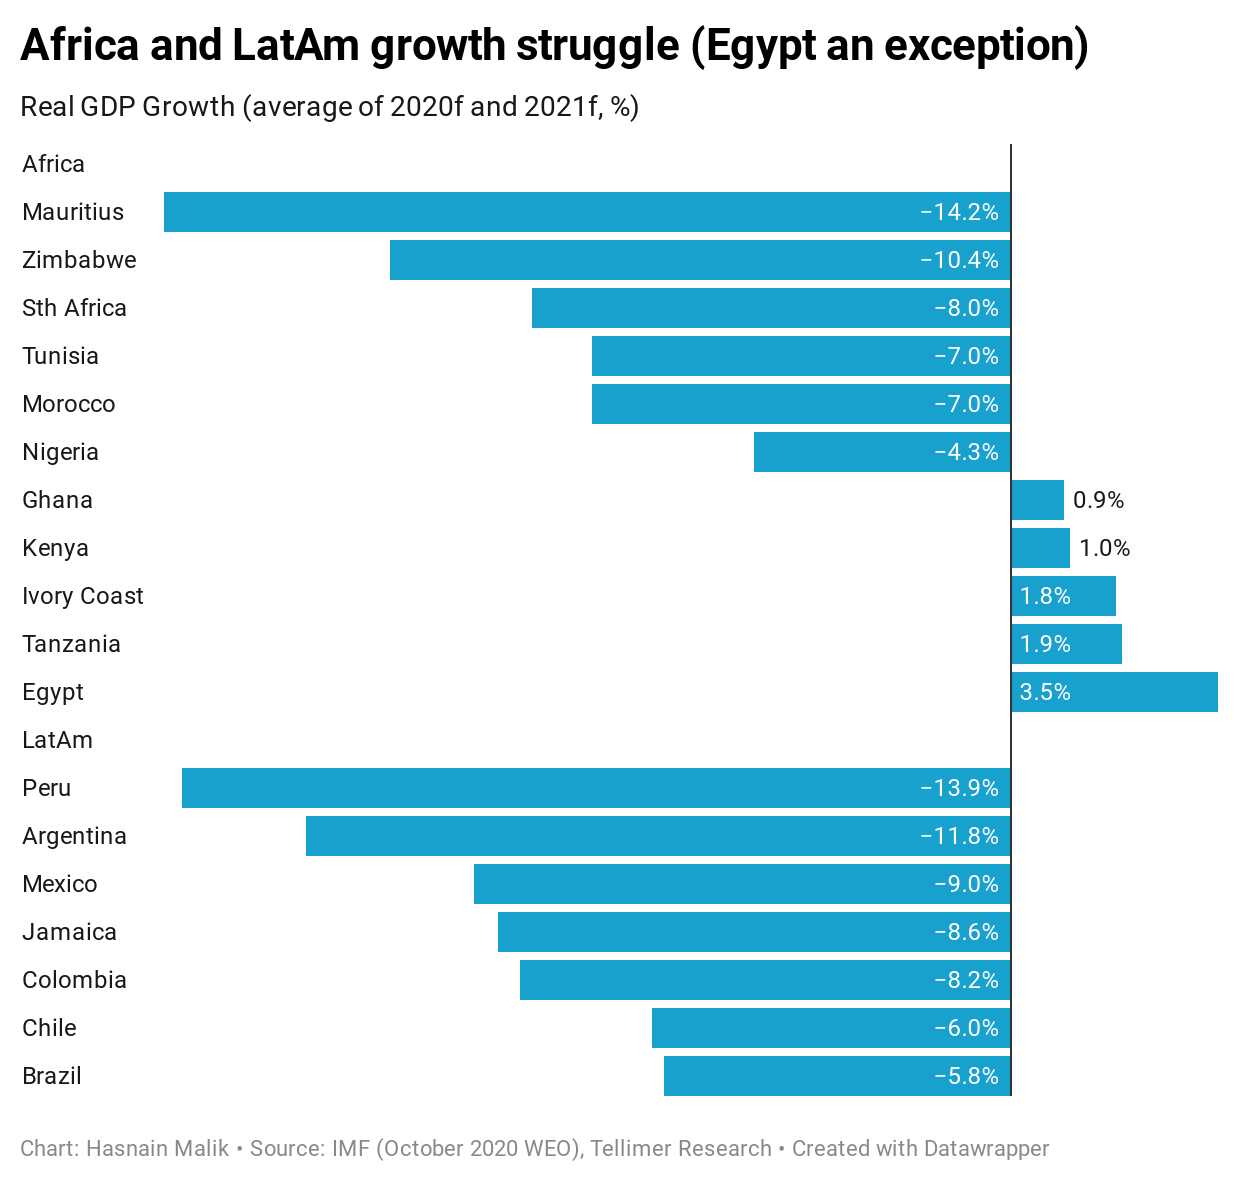 Africa and LatAm growth struggle (Egypt an exception)